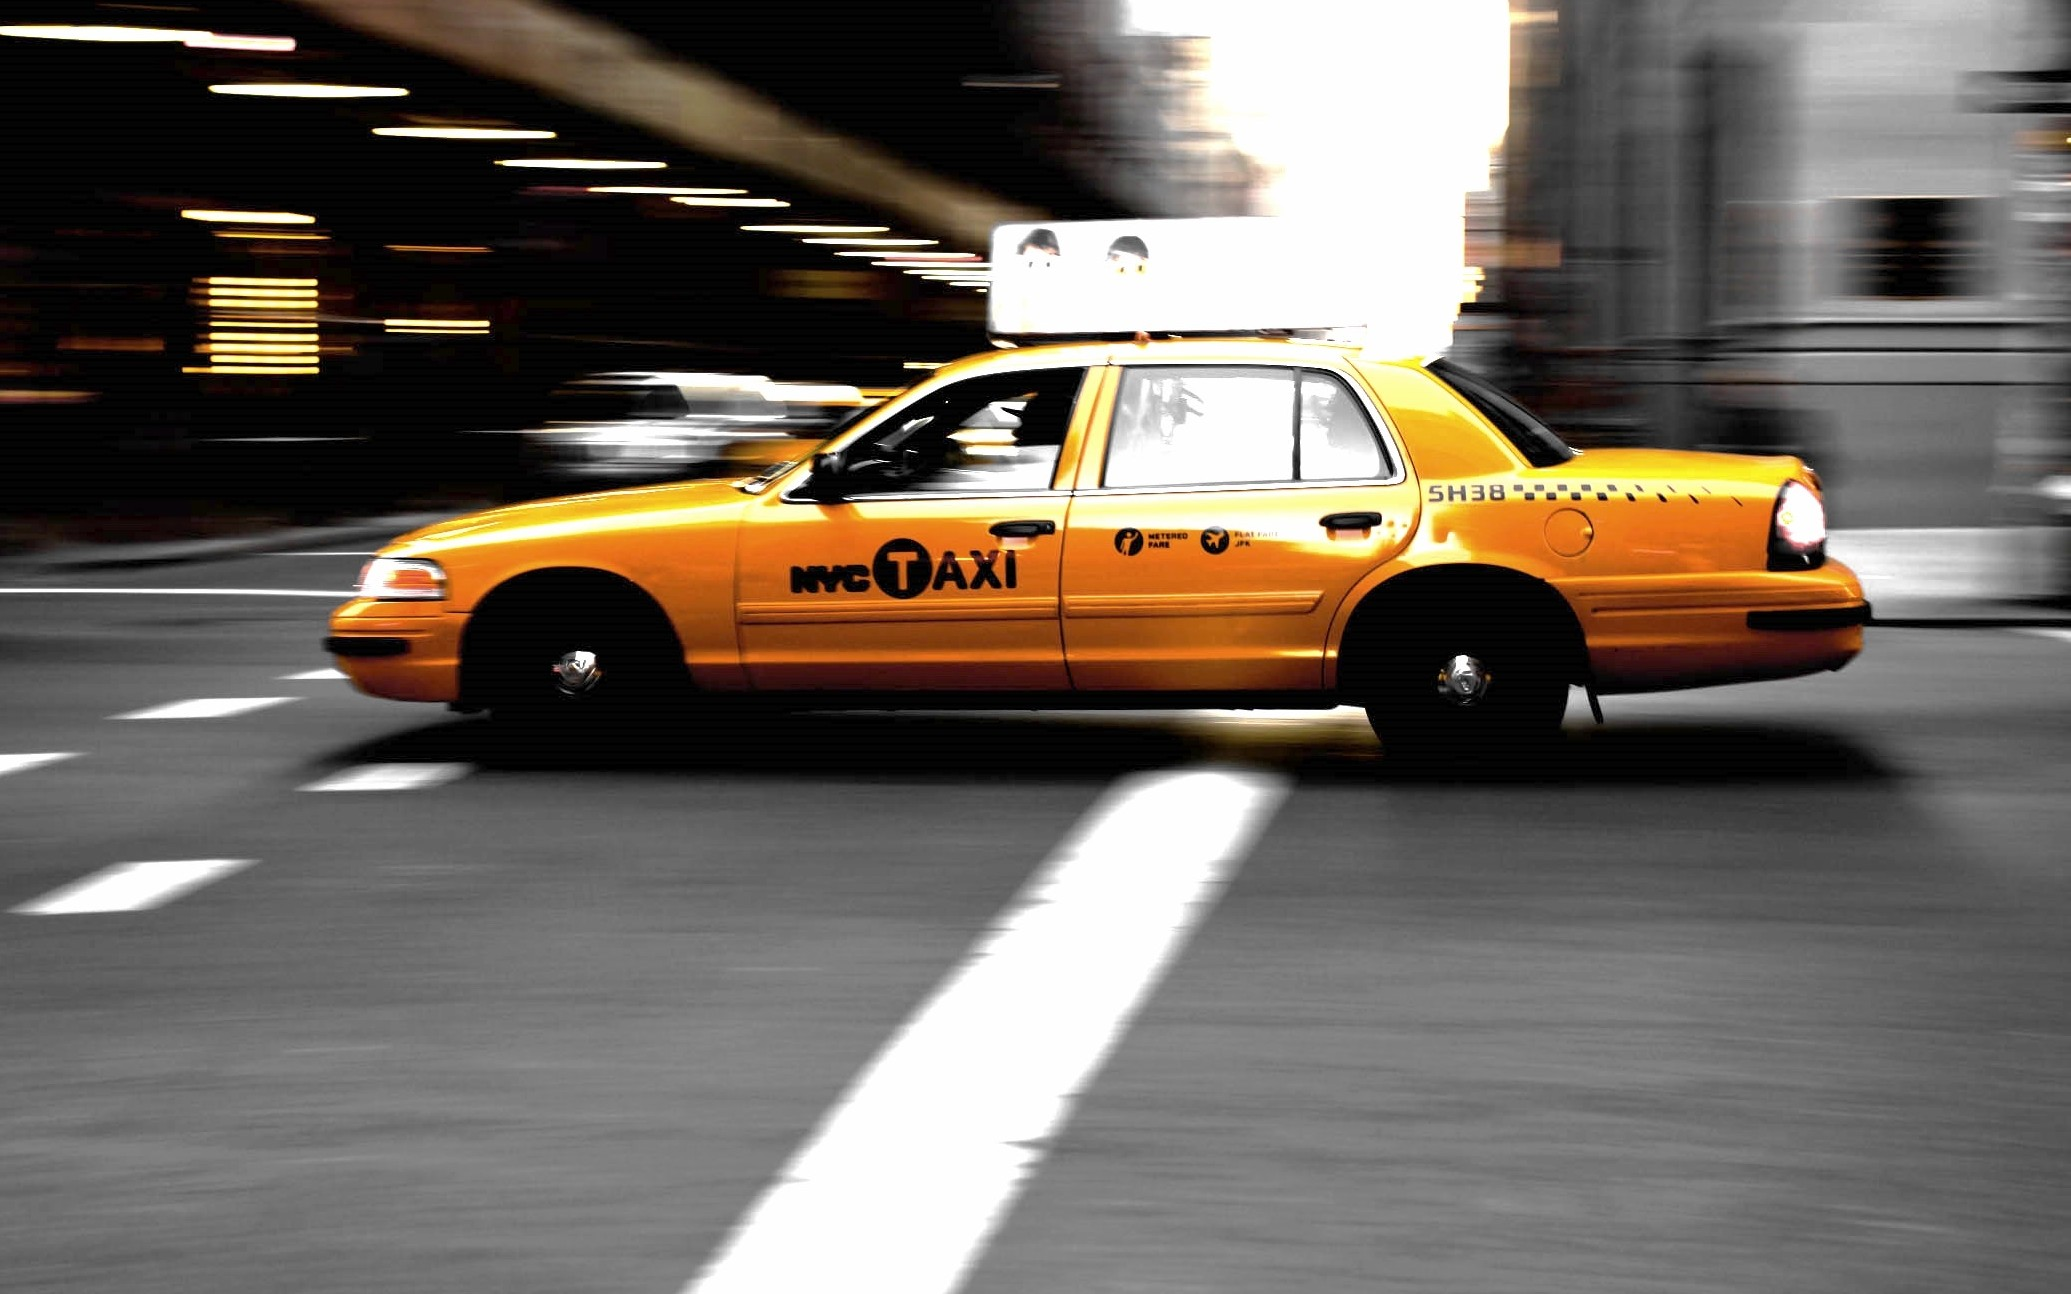 Understanding the Technology Stack Behind On-Demand Taxi